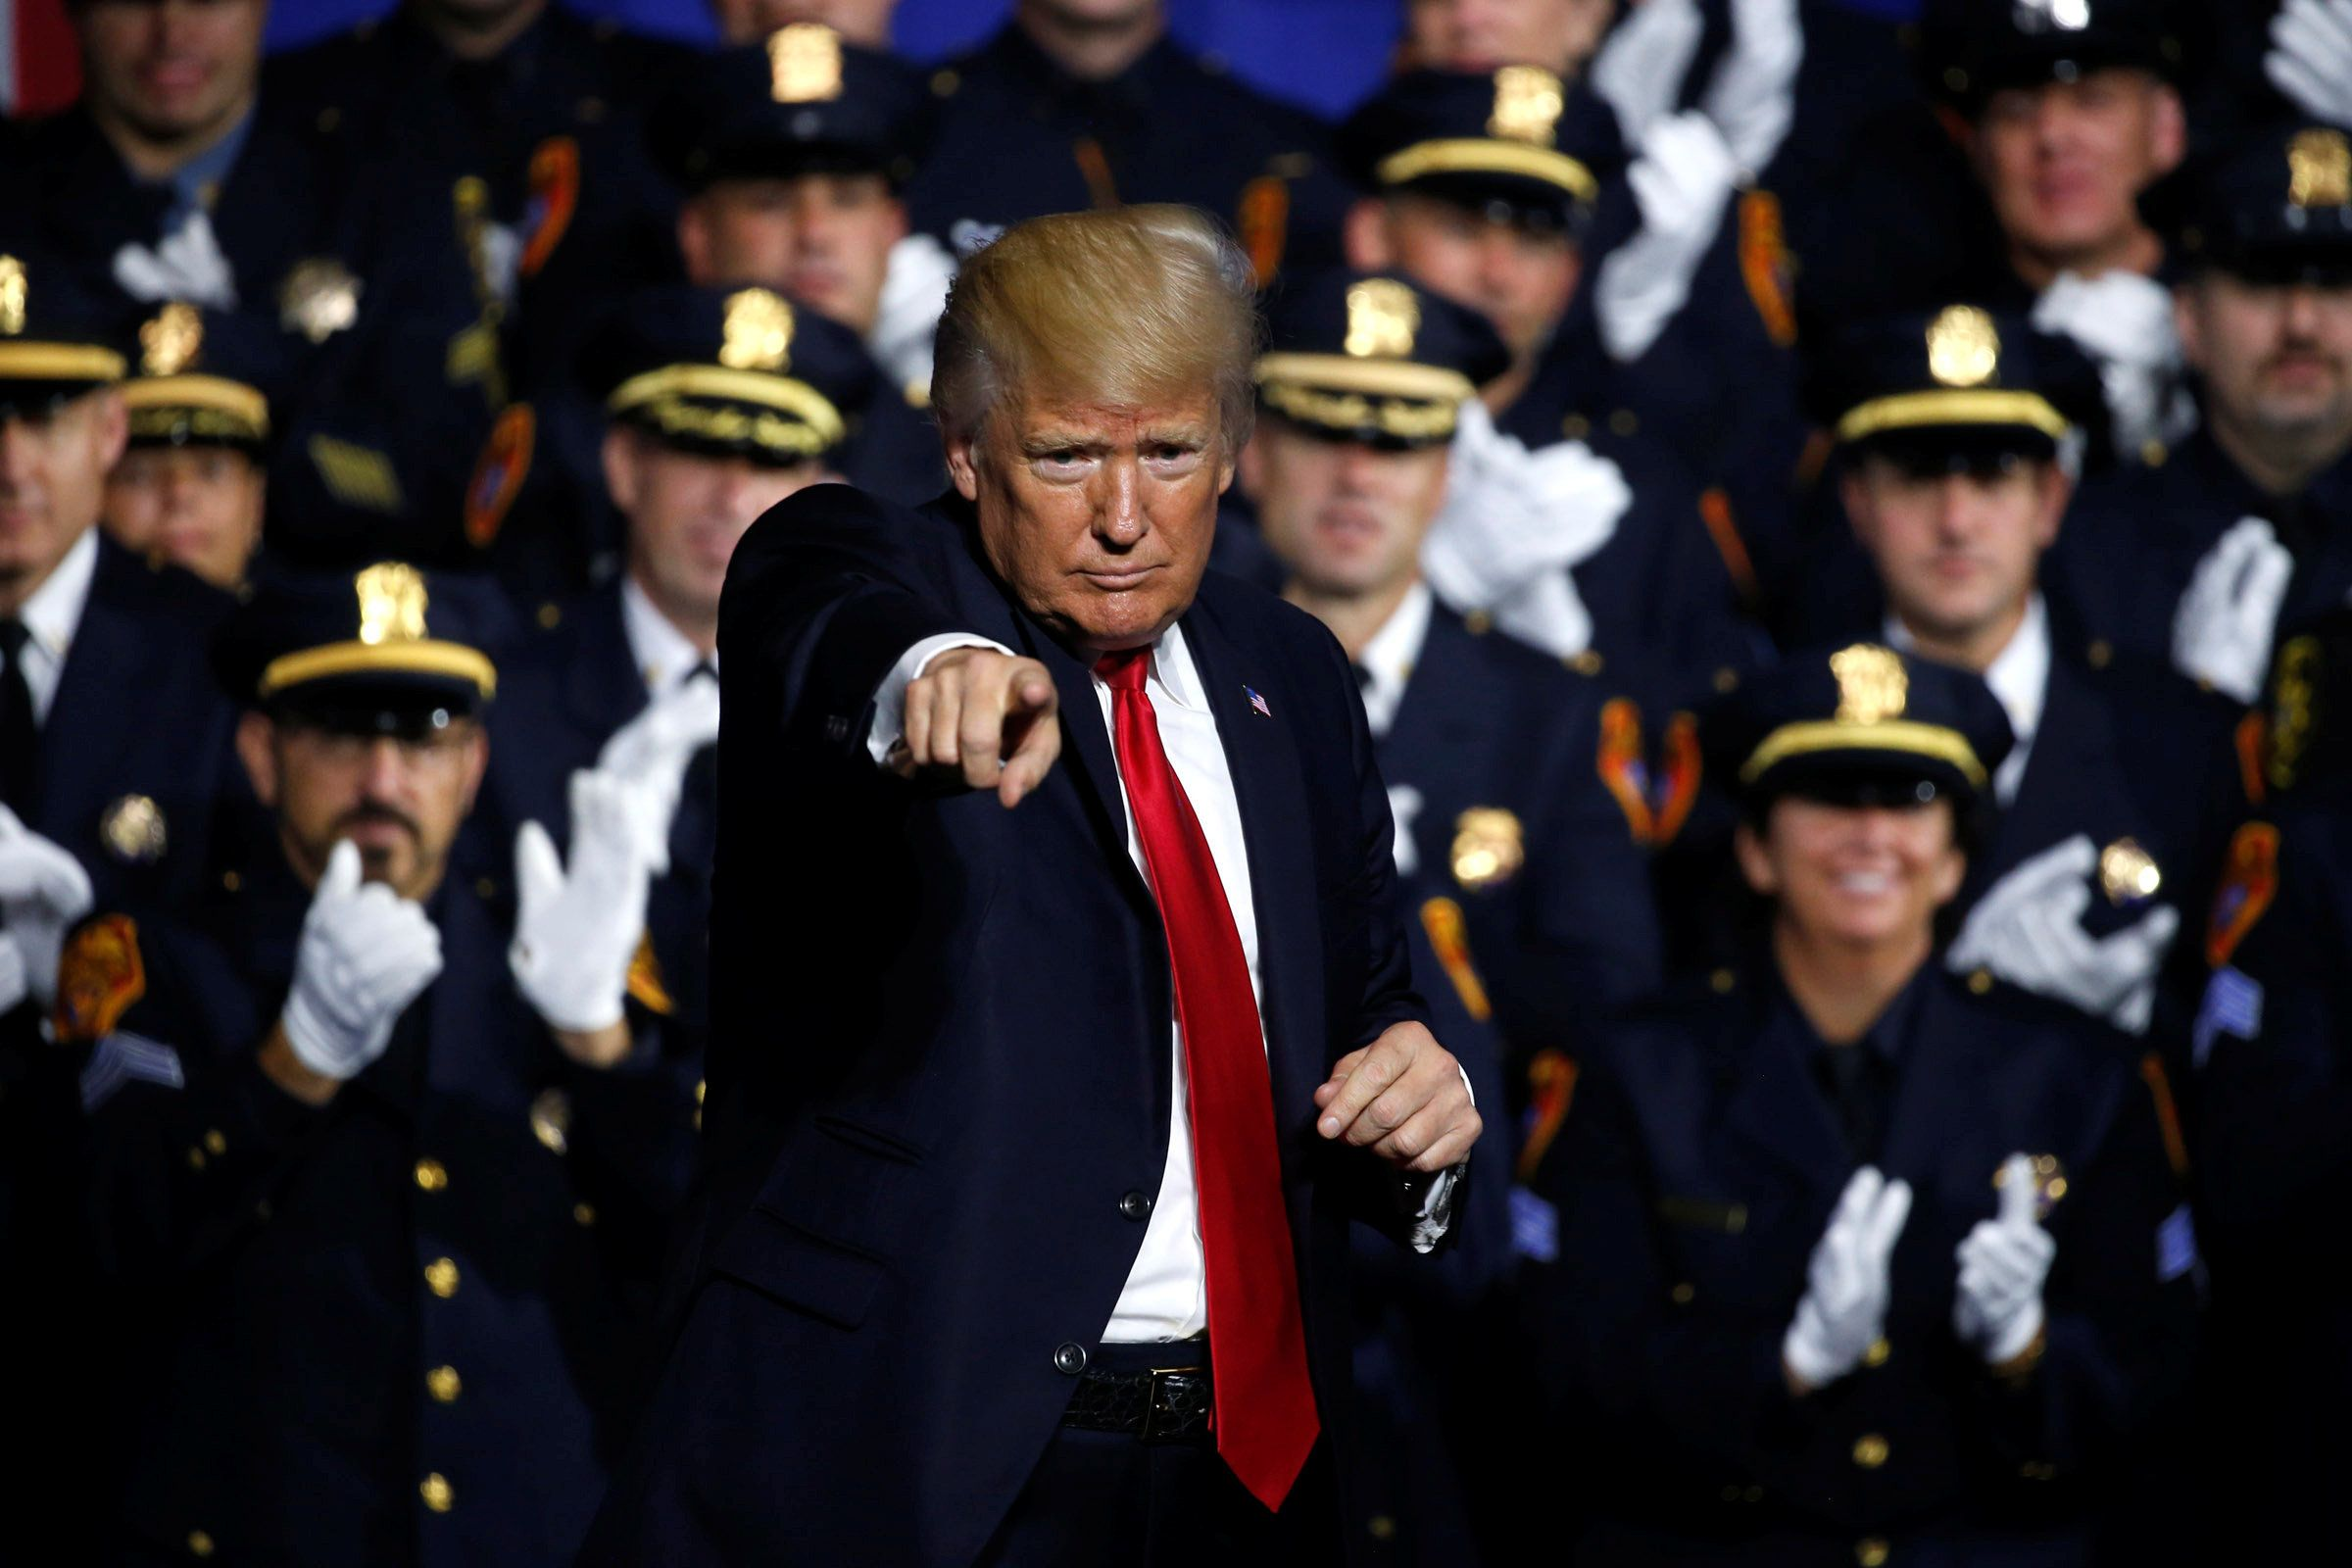 Trump To Police Officers: 'Don't Be Too Nice' When Making Arrests